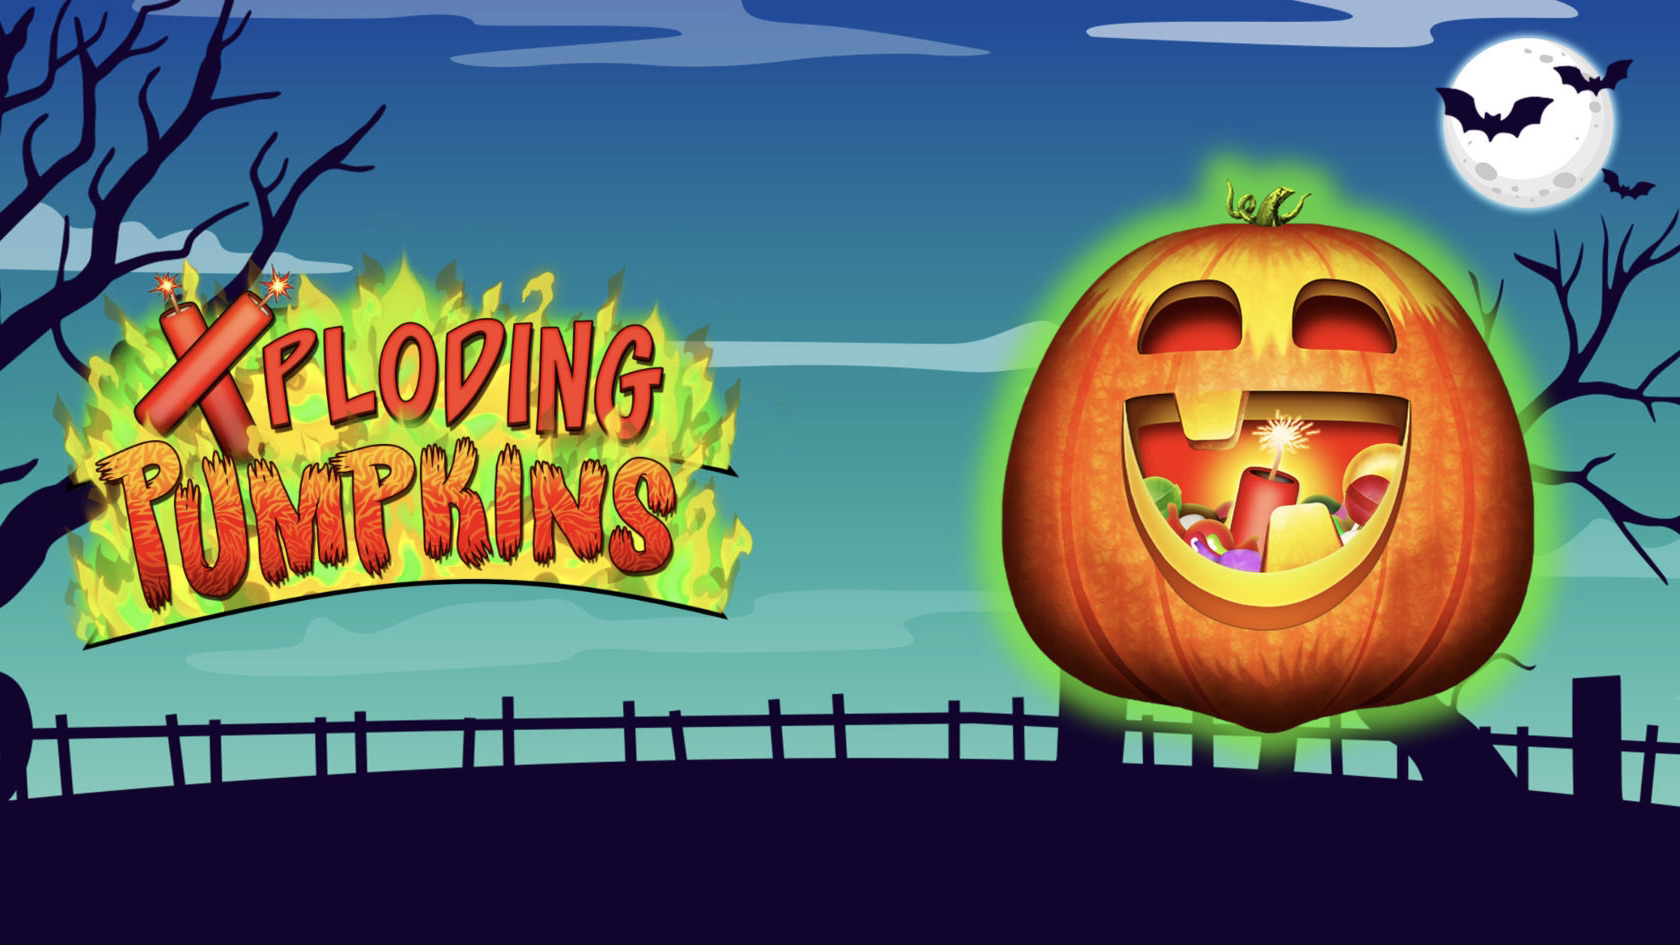 Xploding Pumpkins is a 5x3, 10-payline cascading slot with features including exploding pumpkin wilds and two gamble features.